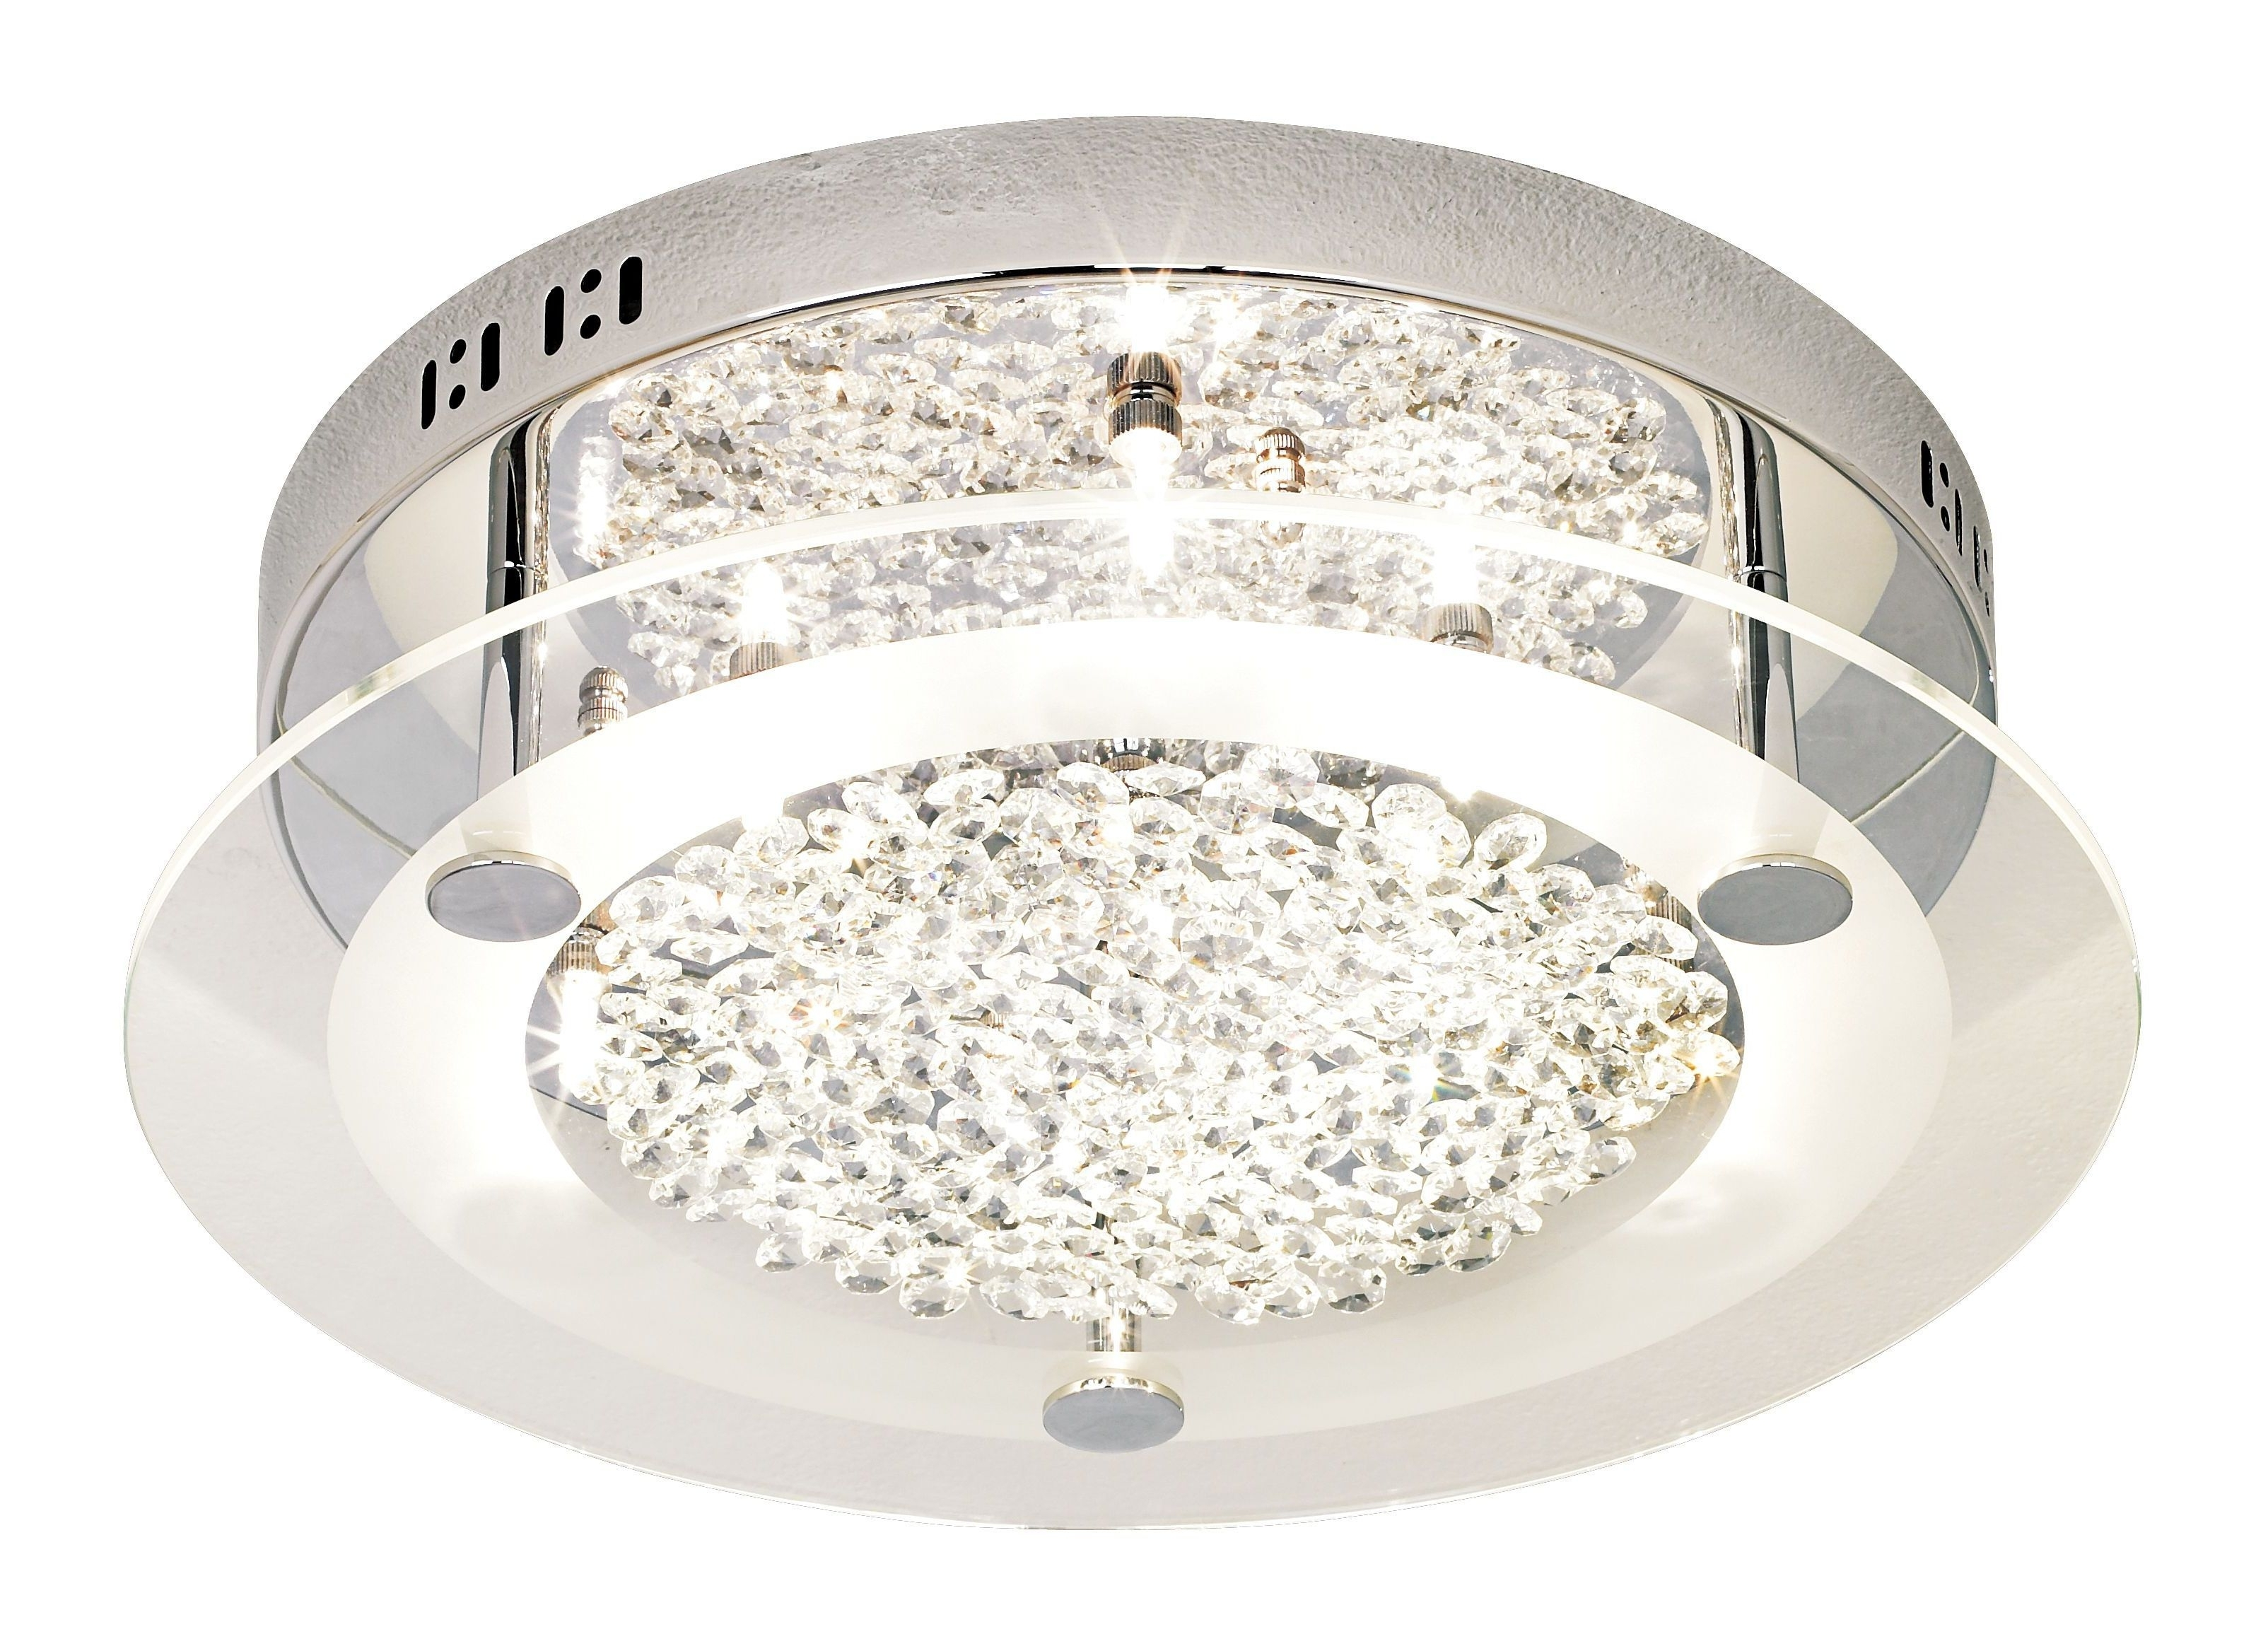 Chandelier Bathroom Ceiling Lights Throughout Recent Stunning Bathroom Exhaust Fan With Light And Timer (View 7 of 15)